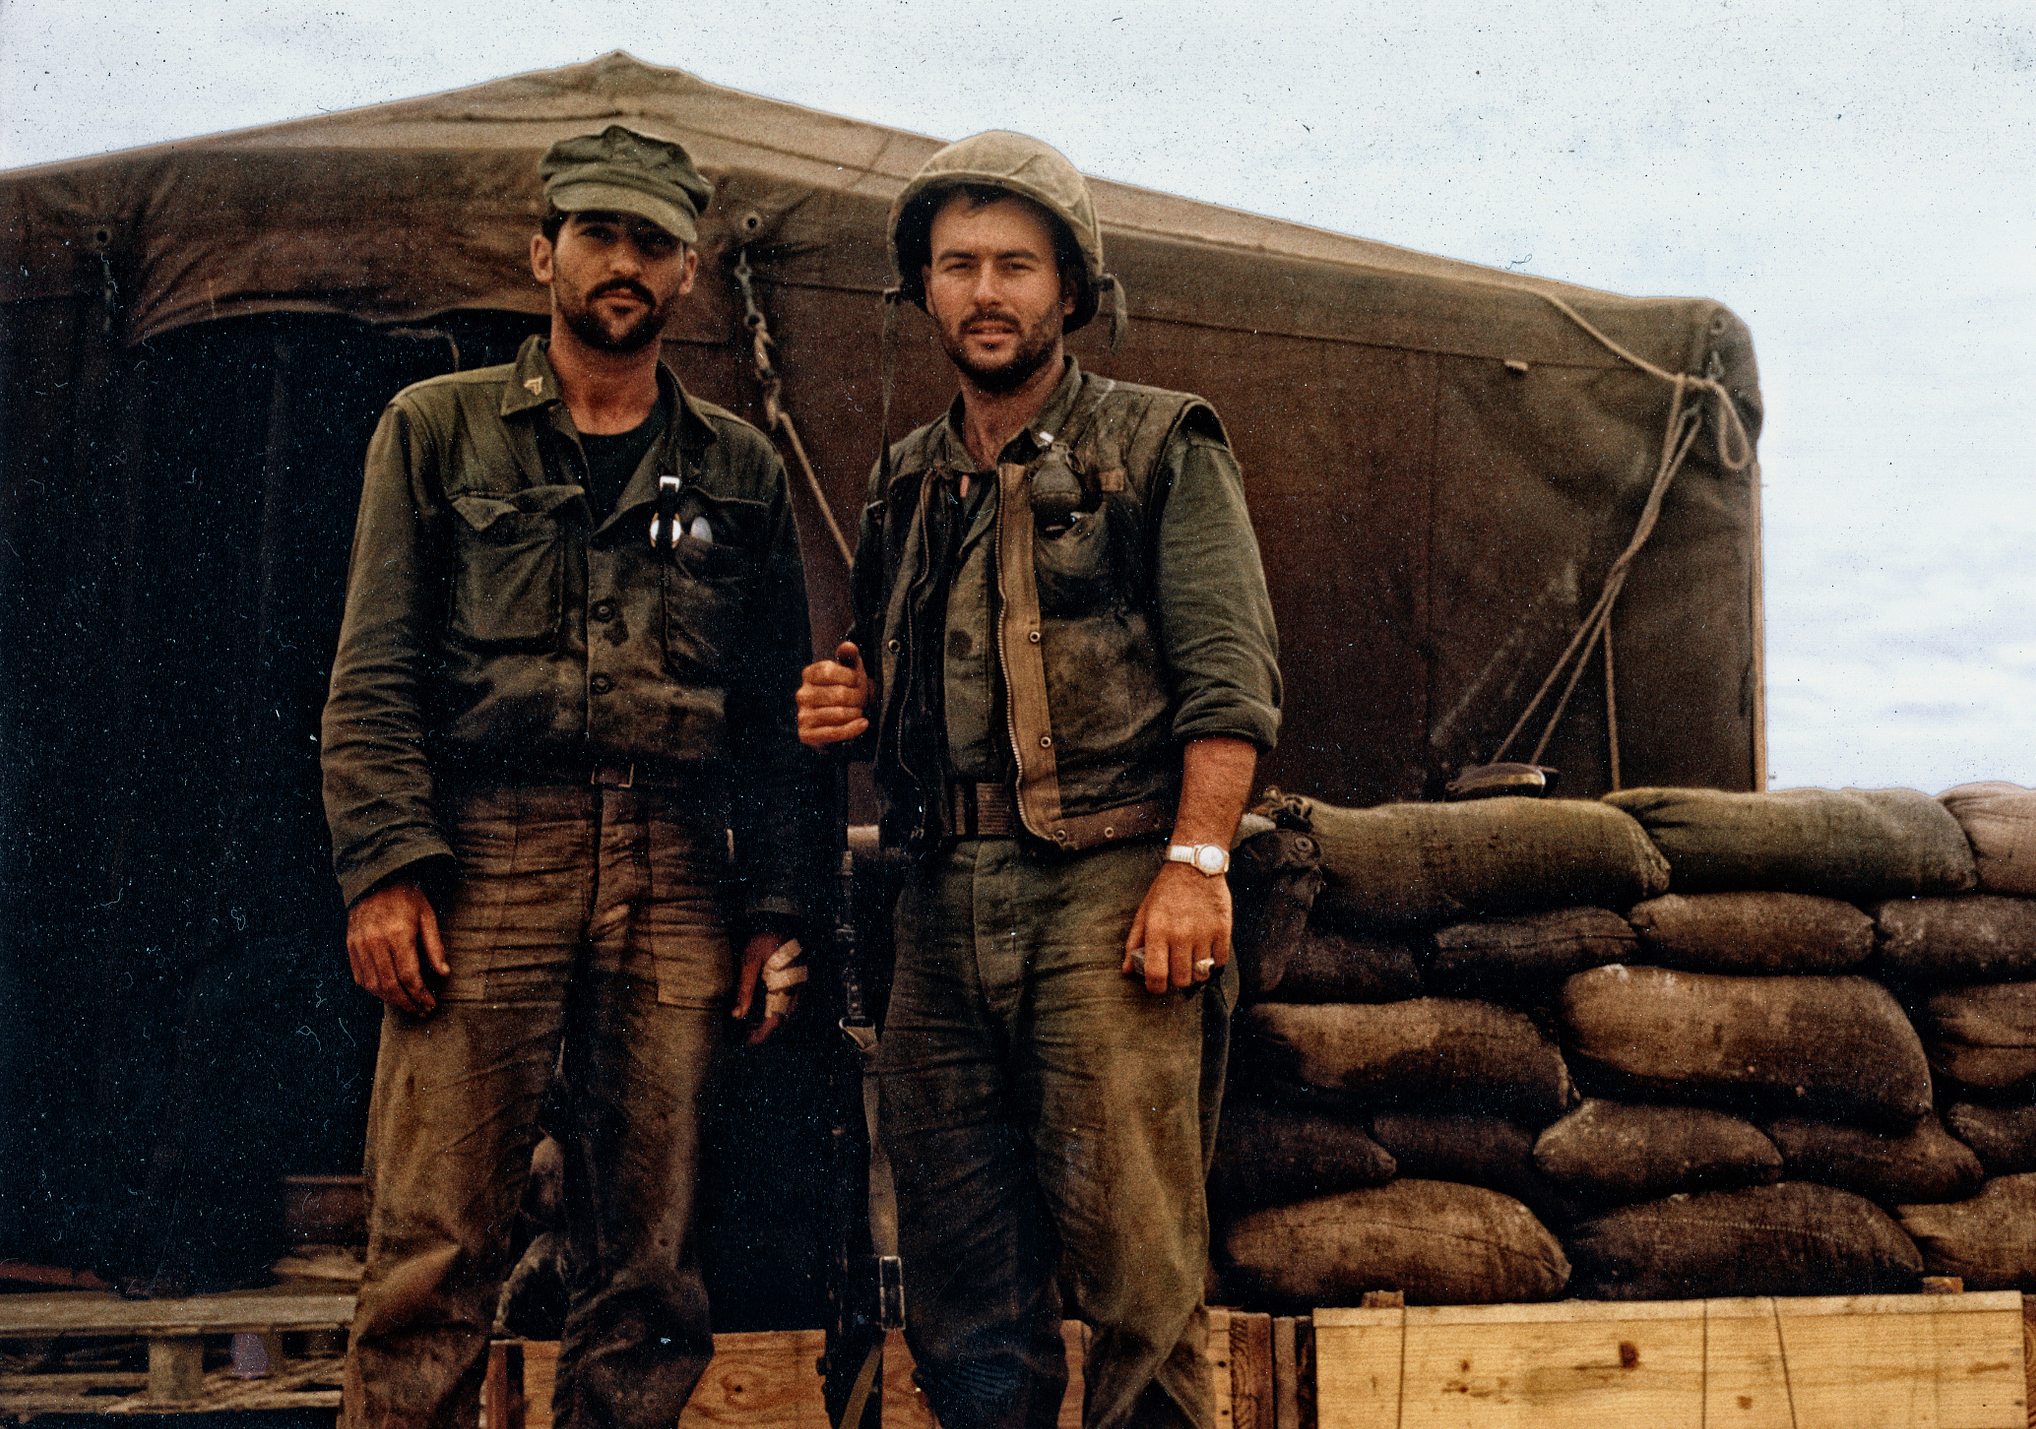 Radio operator Cpl. Patrick Iacunato, left, and 1st Lt. Harvey C. Barnum Jr. pose for a photo in Vietnam on Dec. 20, 1965, two days after actions that resulted in recommendation for the Medal of Honor for Barnum during Operation Harvest Moon.